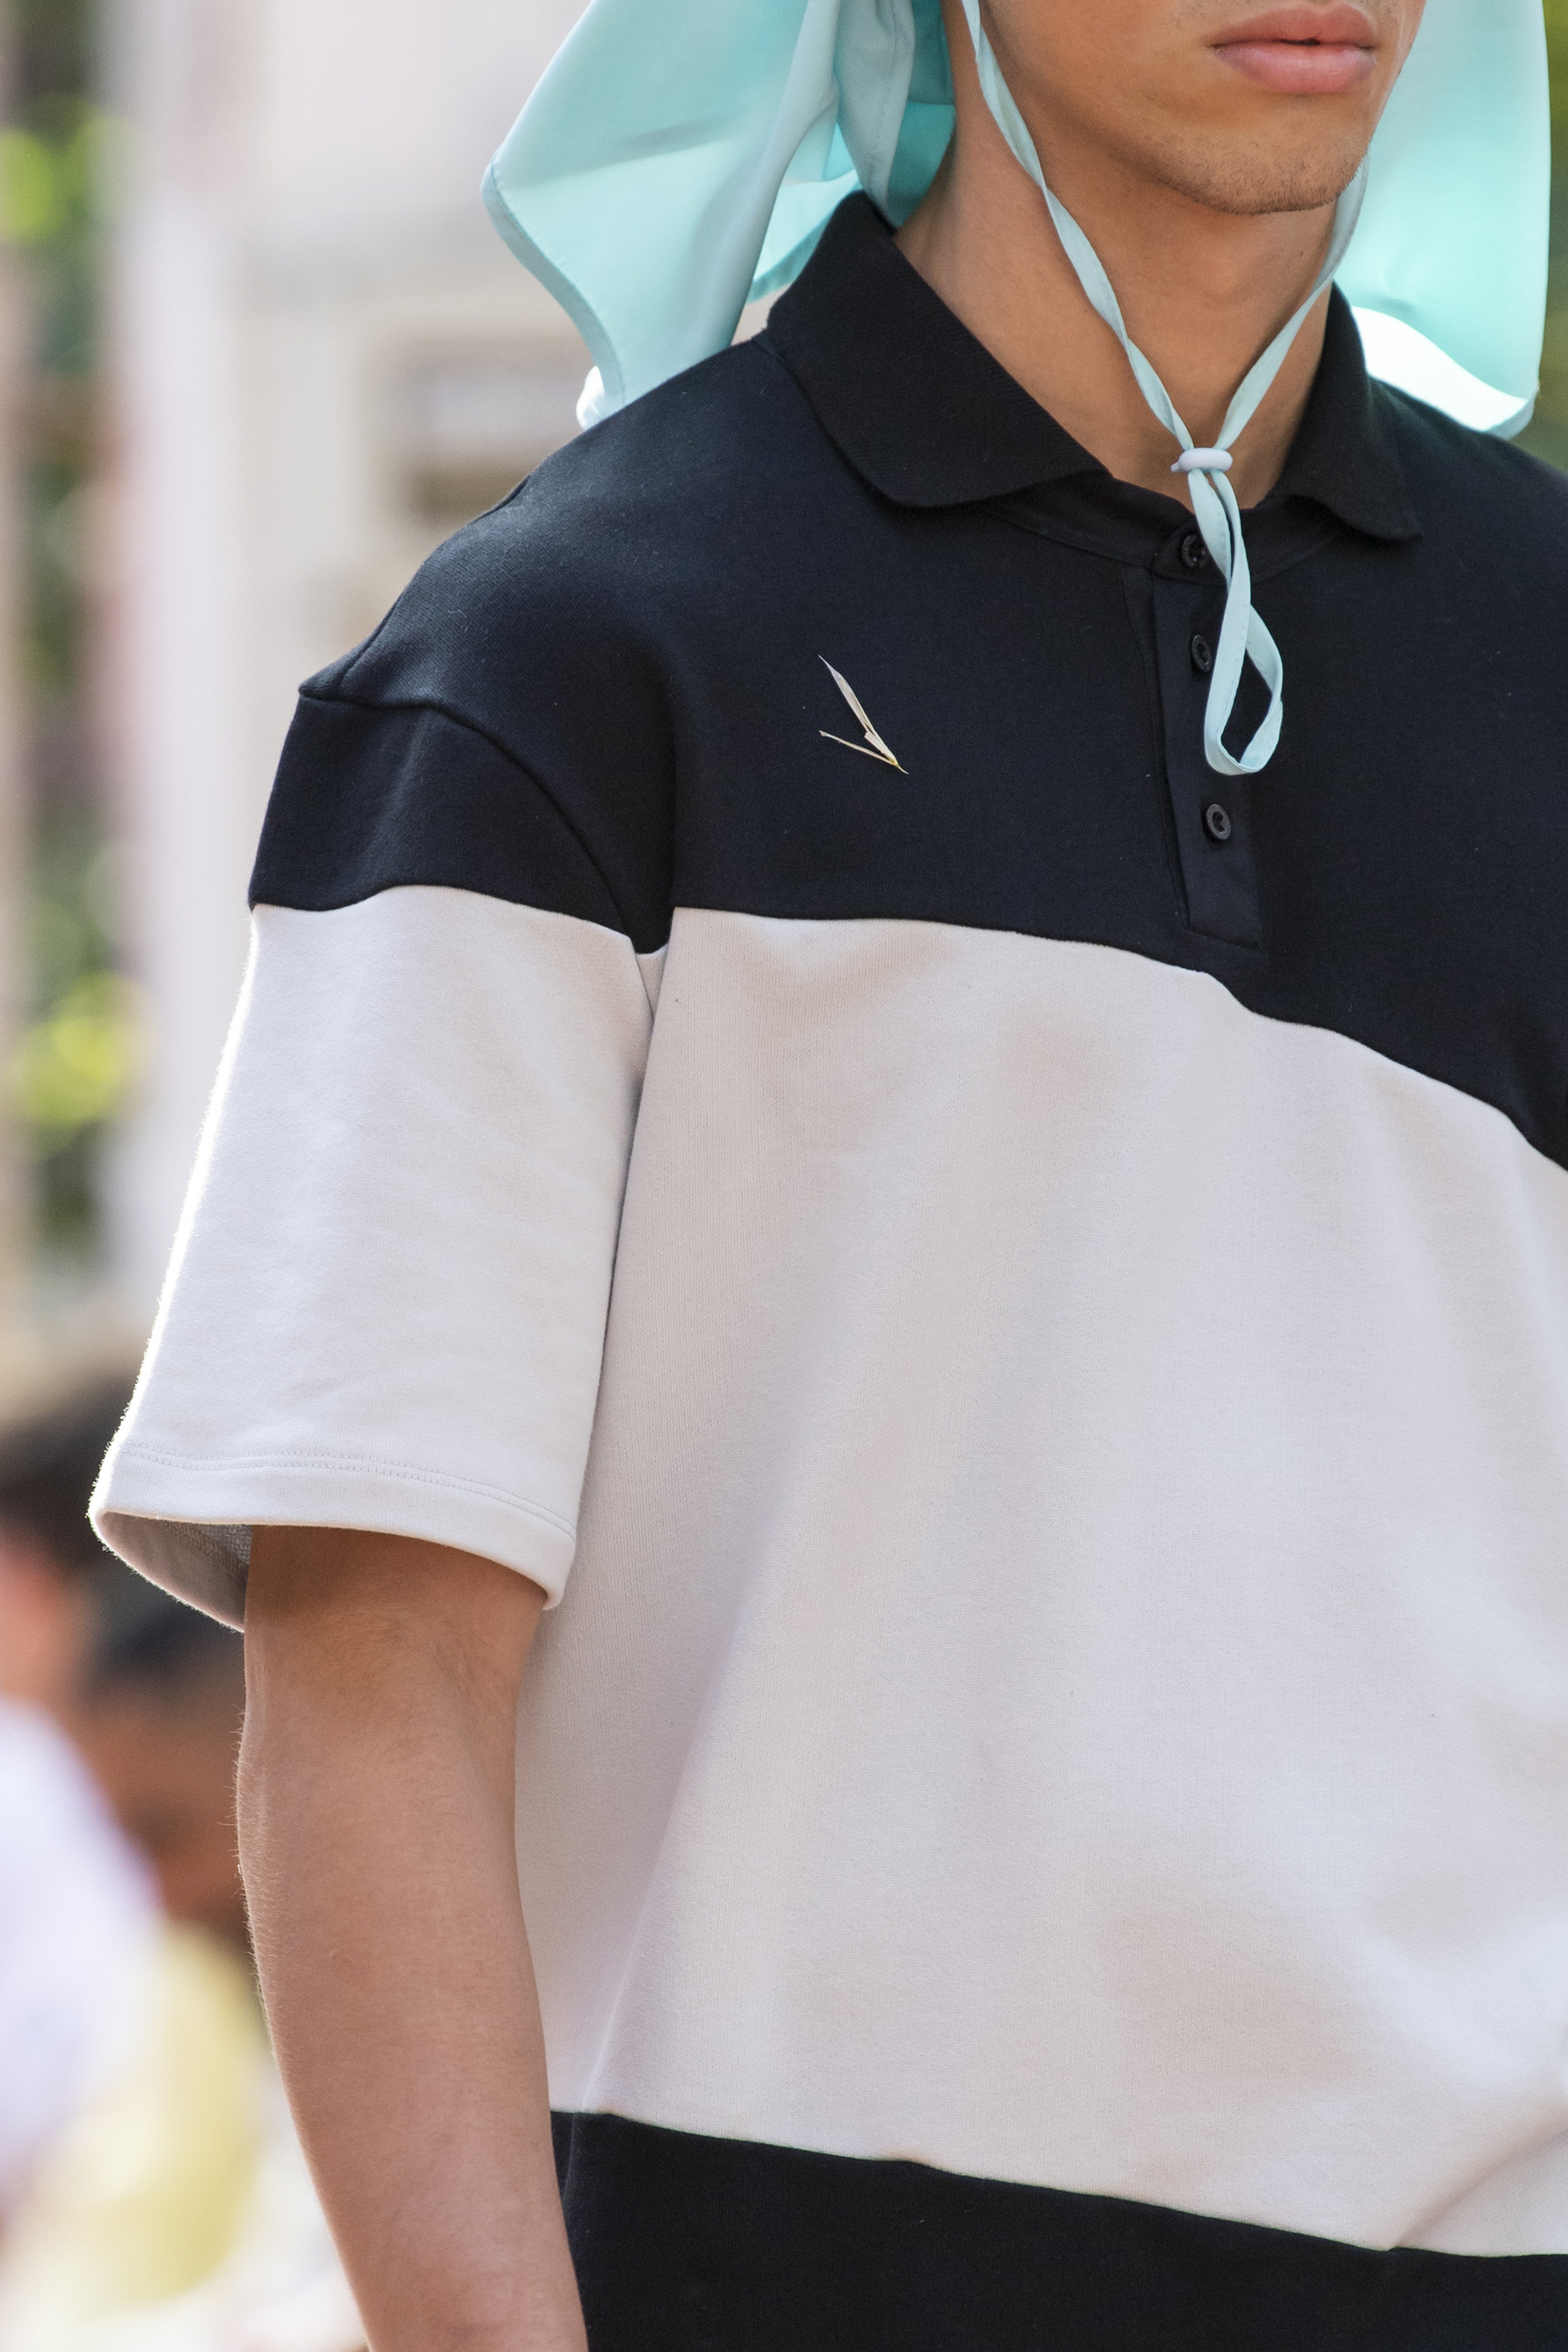 Numero 00 Spring 2020 Men's Fashion Show Details